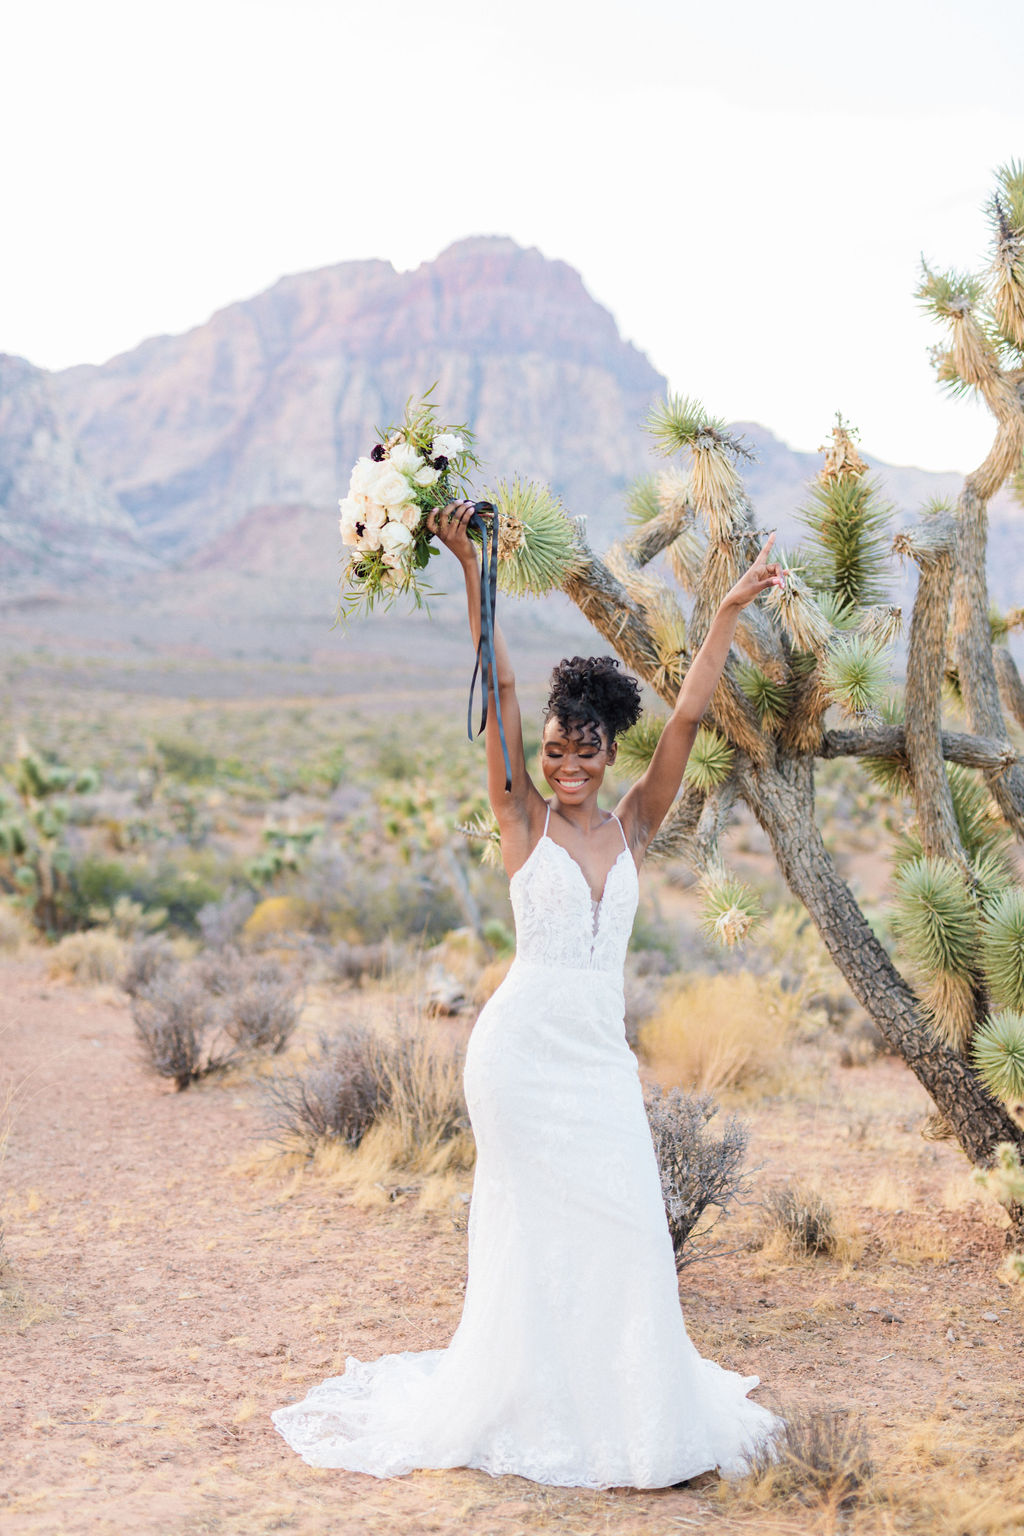 Edgy Romantic Wedding Red Rock Canyon Las Vegas Bride Elizabeth Burgi Photography 7